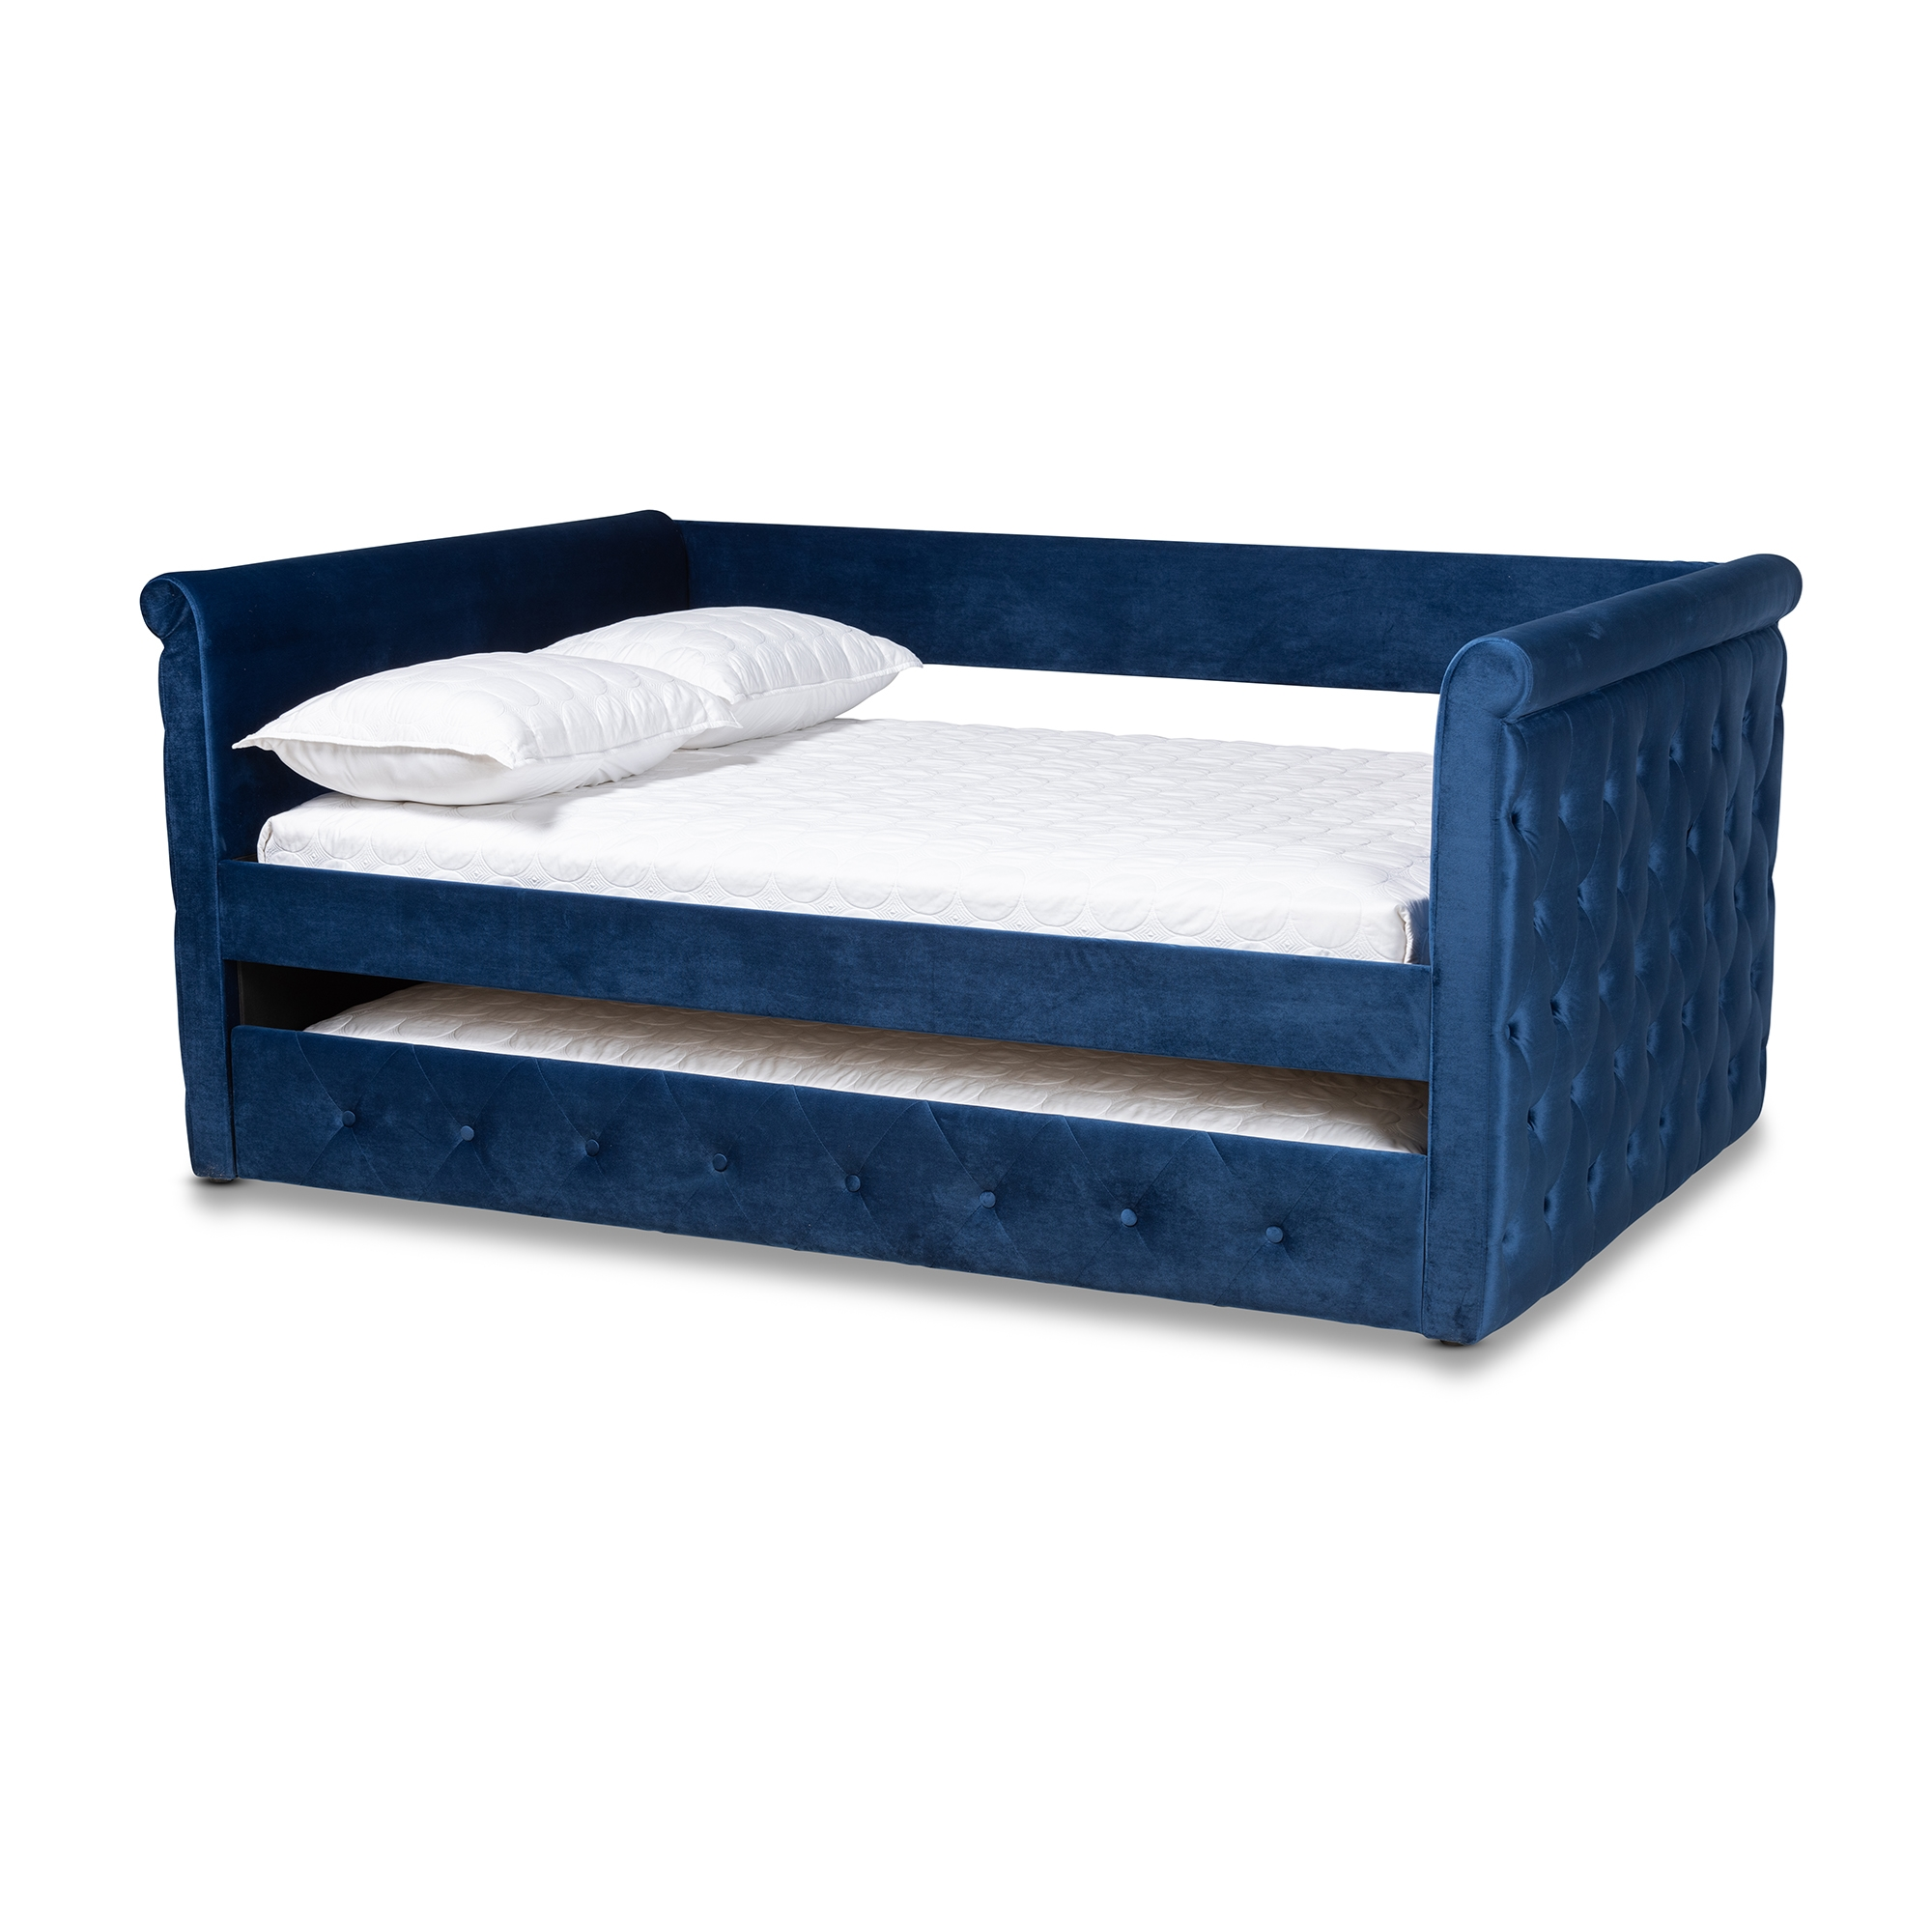 Picture of: Baxton Studio Amaya Modern And Contemporary Navy Blue Velvet Fabric Upholstered Queen Size Daybed With Trundle